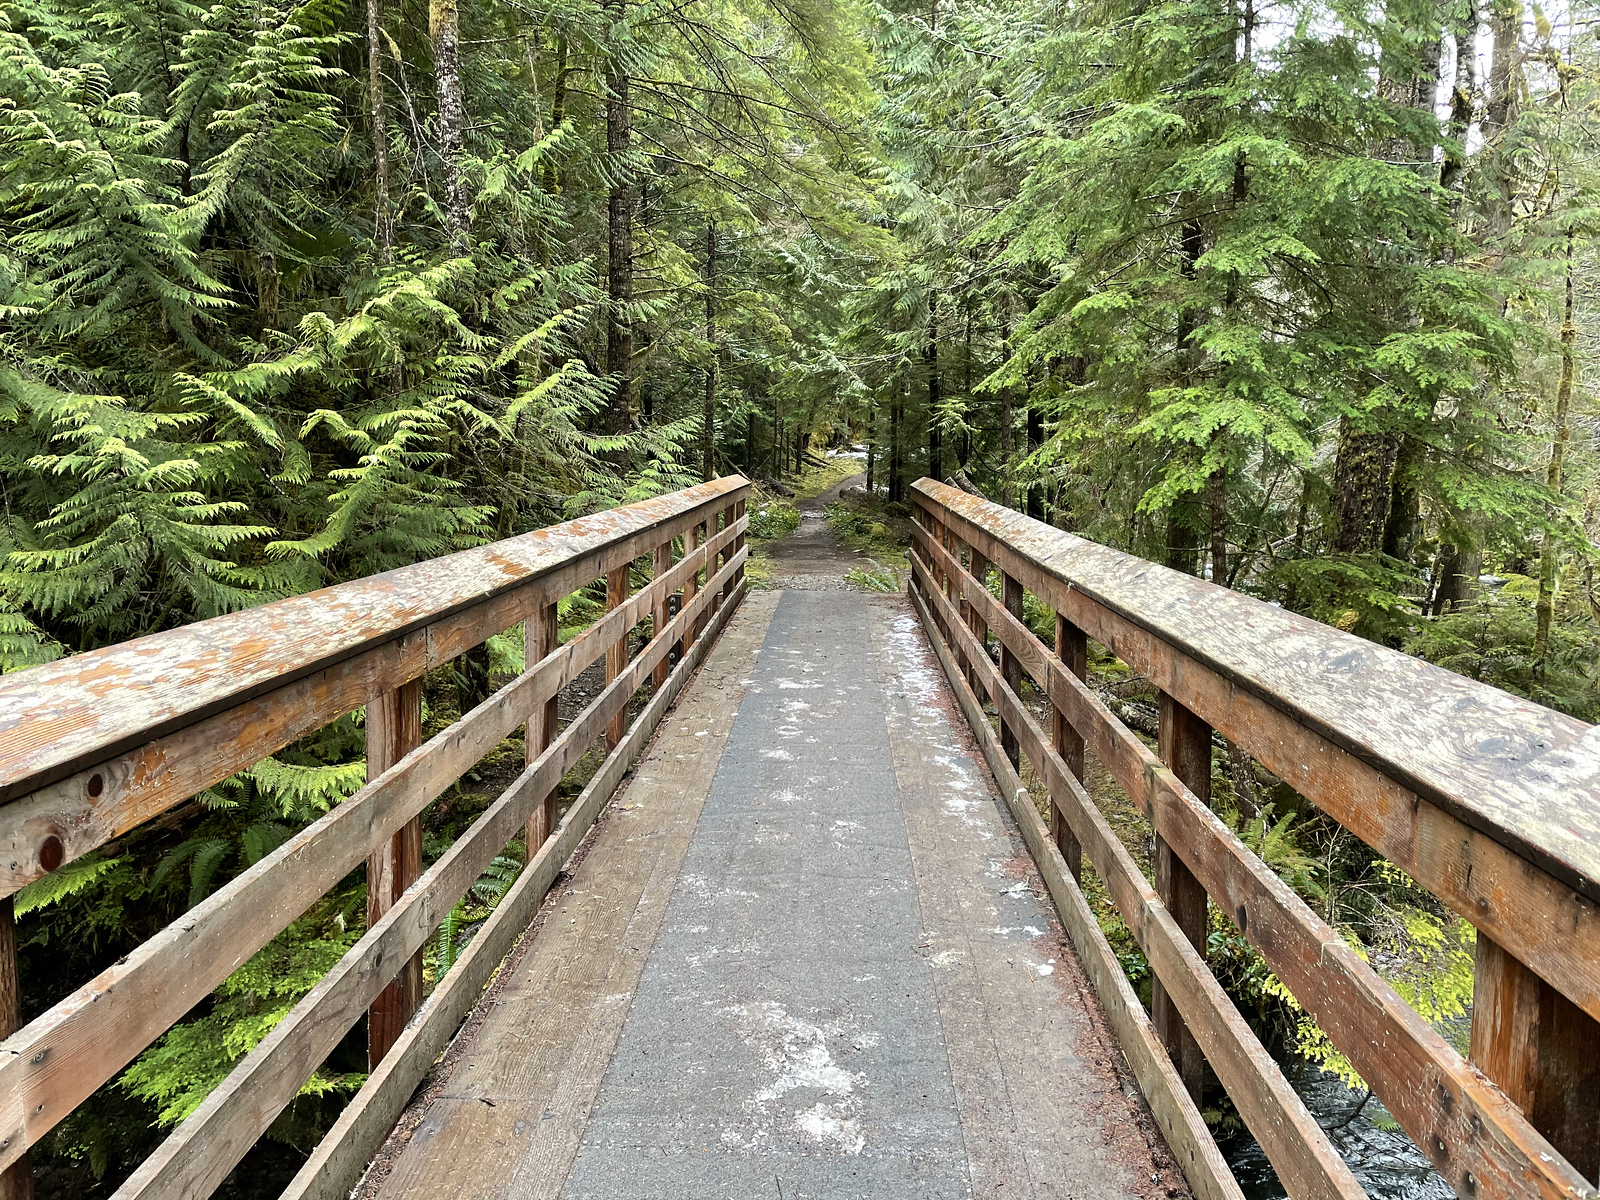 One of the numerous bridges crossing back and forth over the Quilcene River